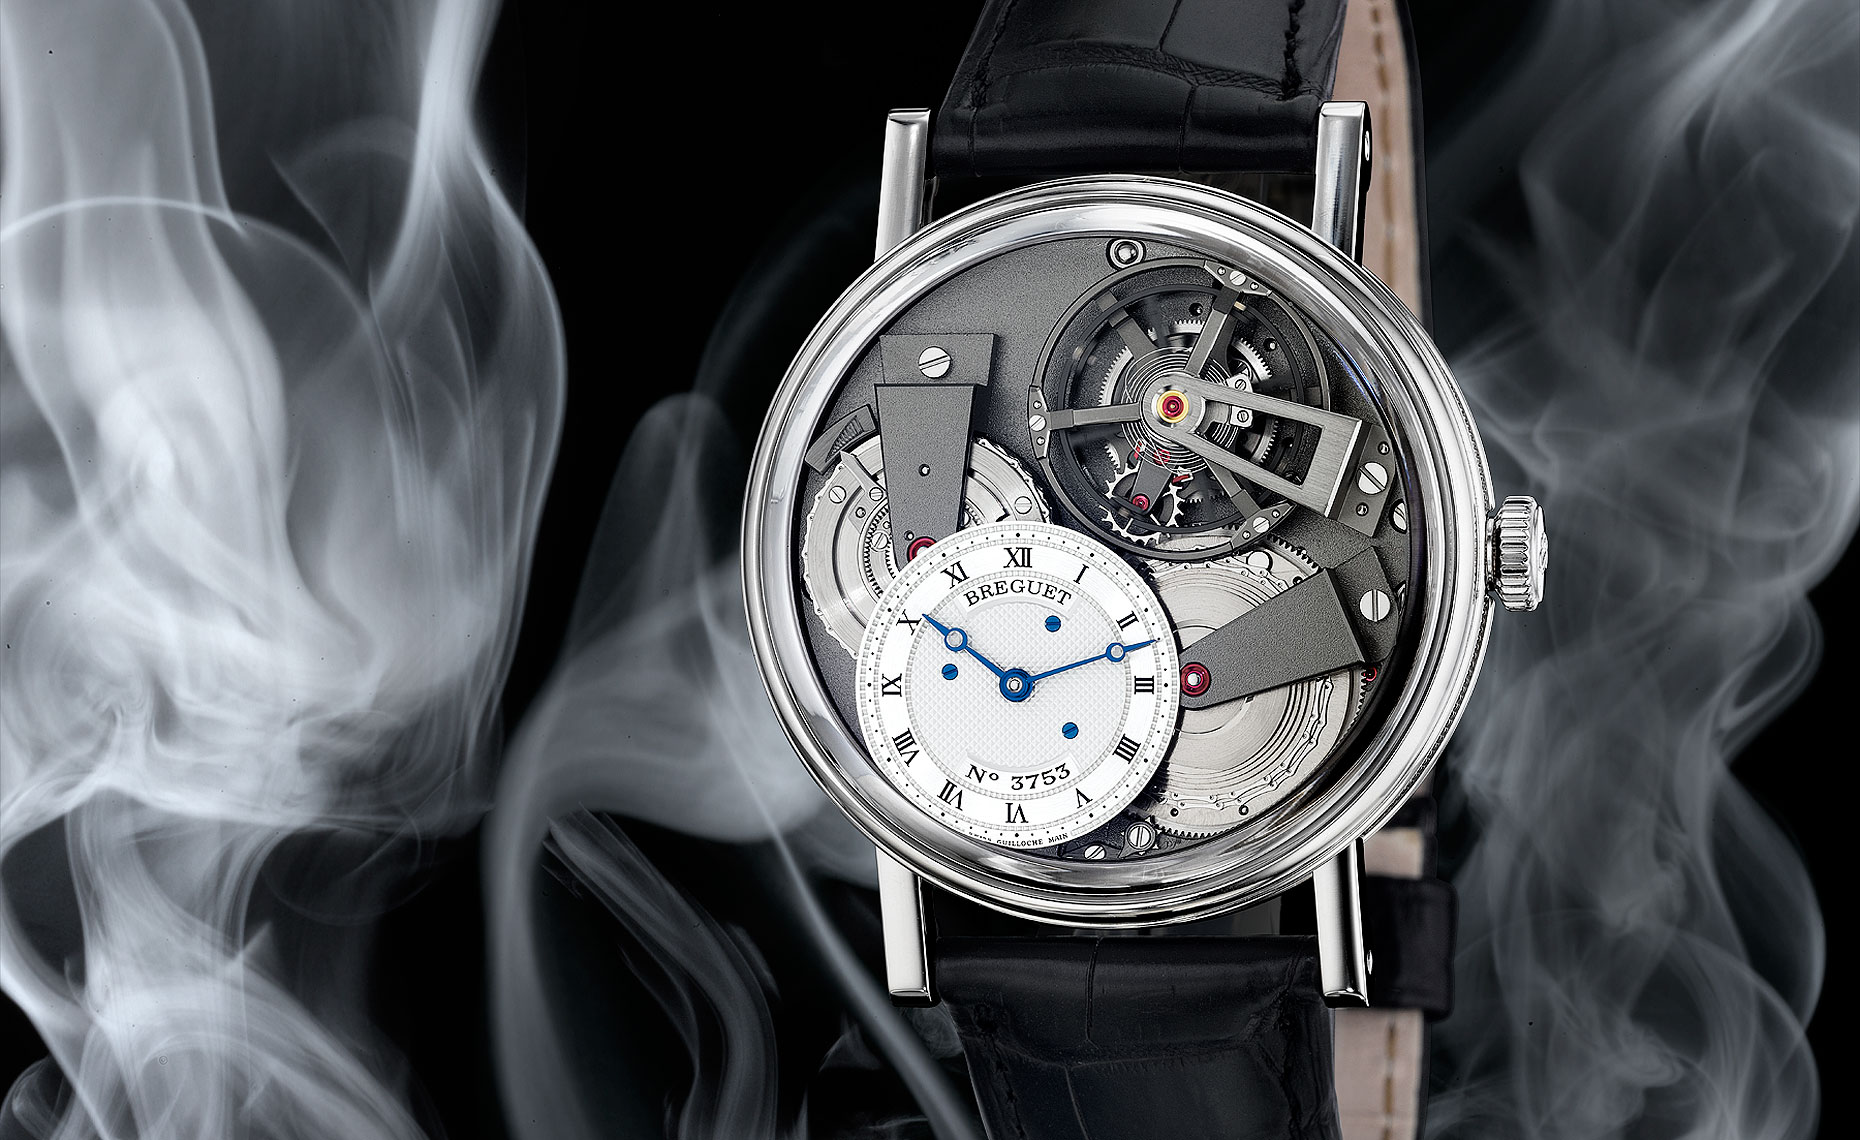 Breguet with Smoke